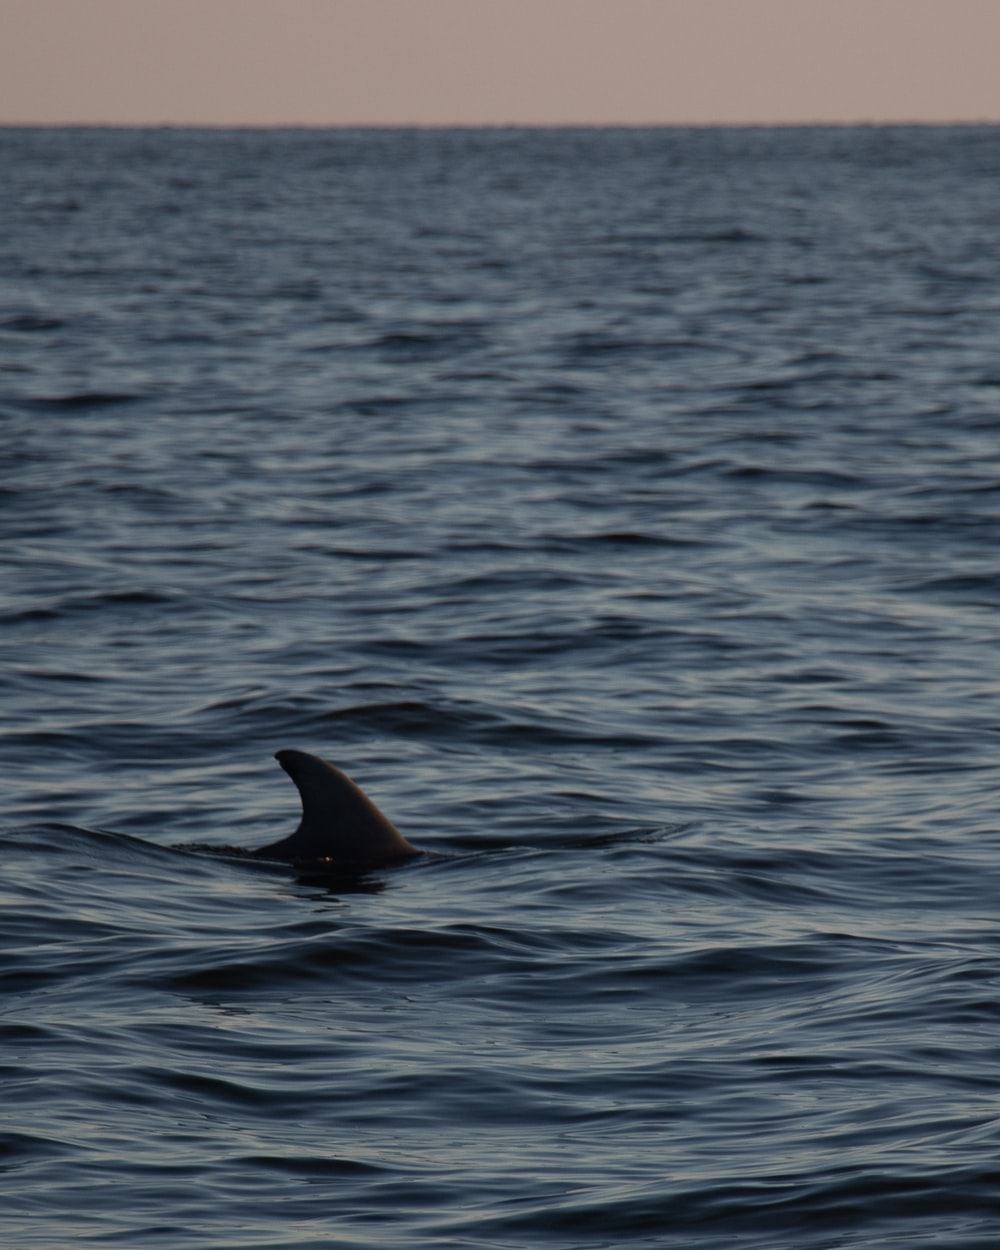 black whale in the sea during daytime